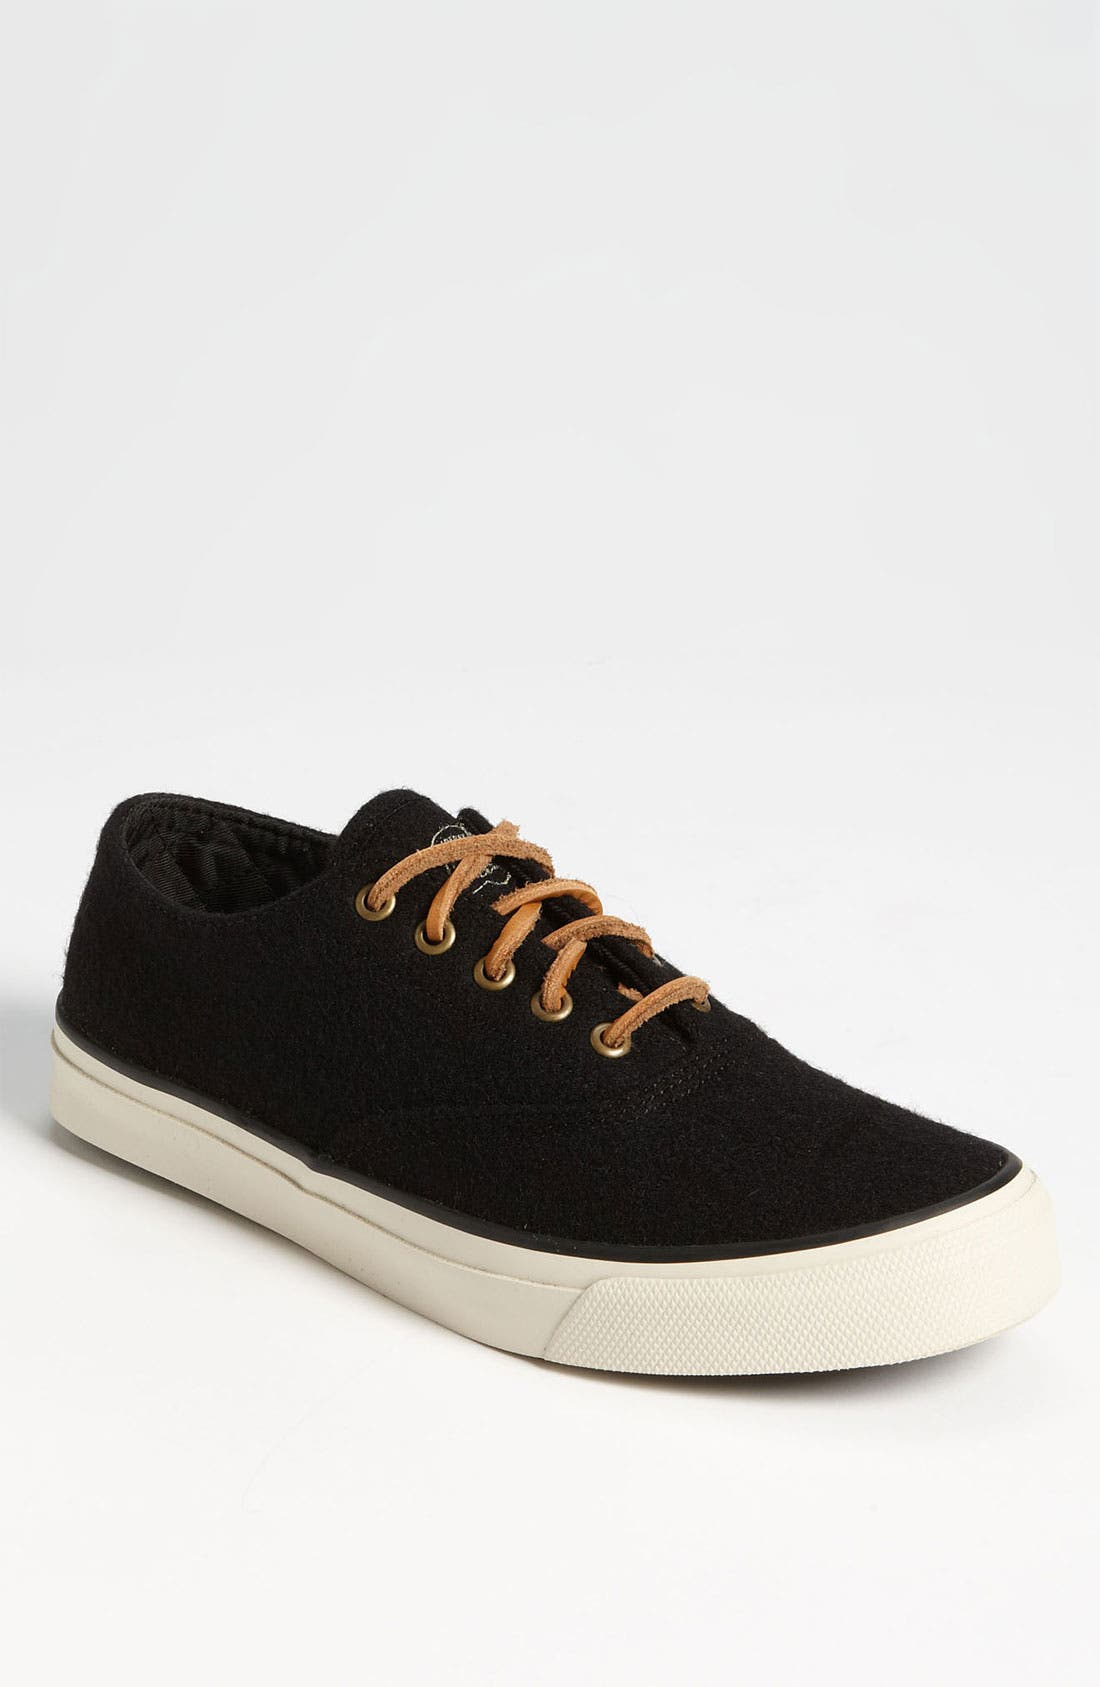 Alternate Image 1 Selected - Sperry Top-Sider® 'Fidelity - CVO' Wool Sneaker